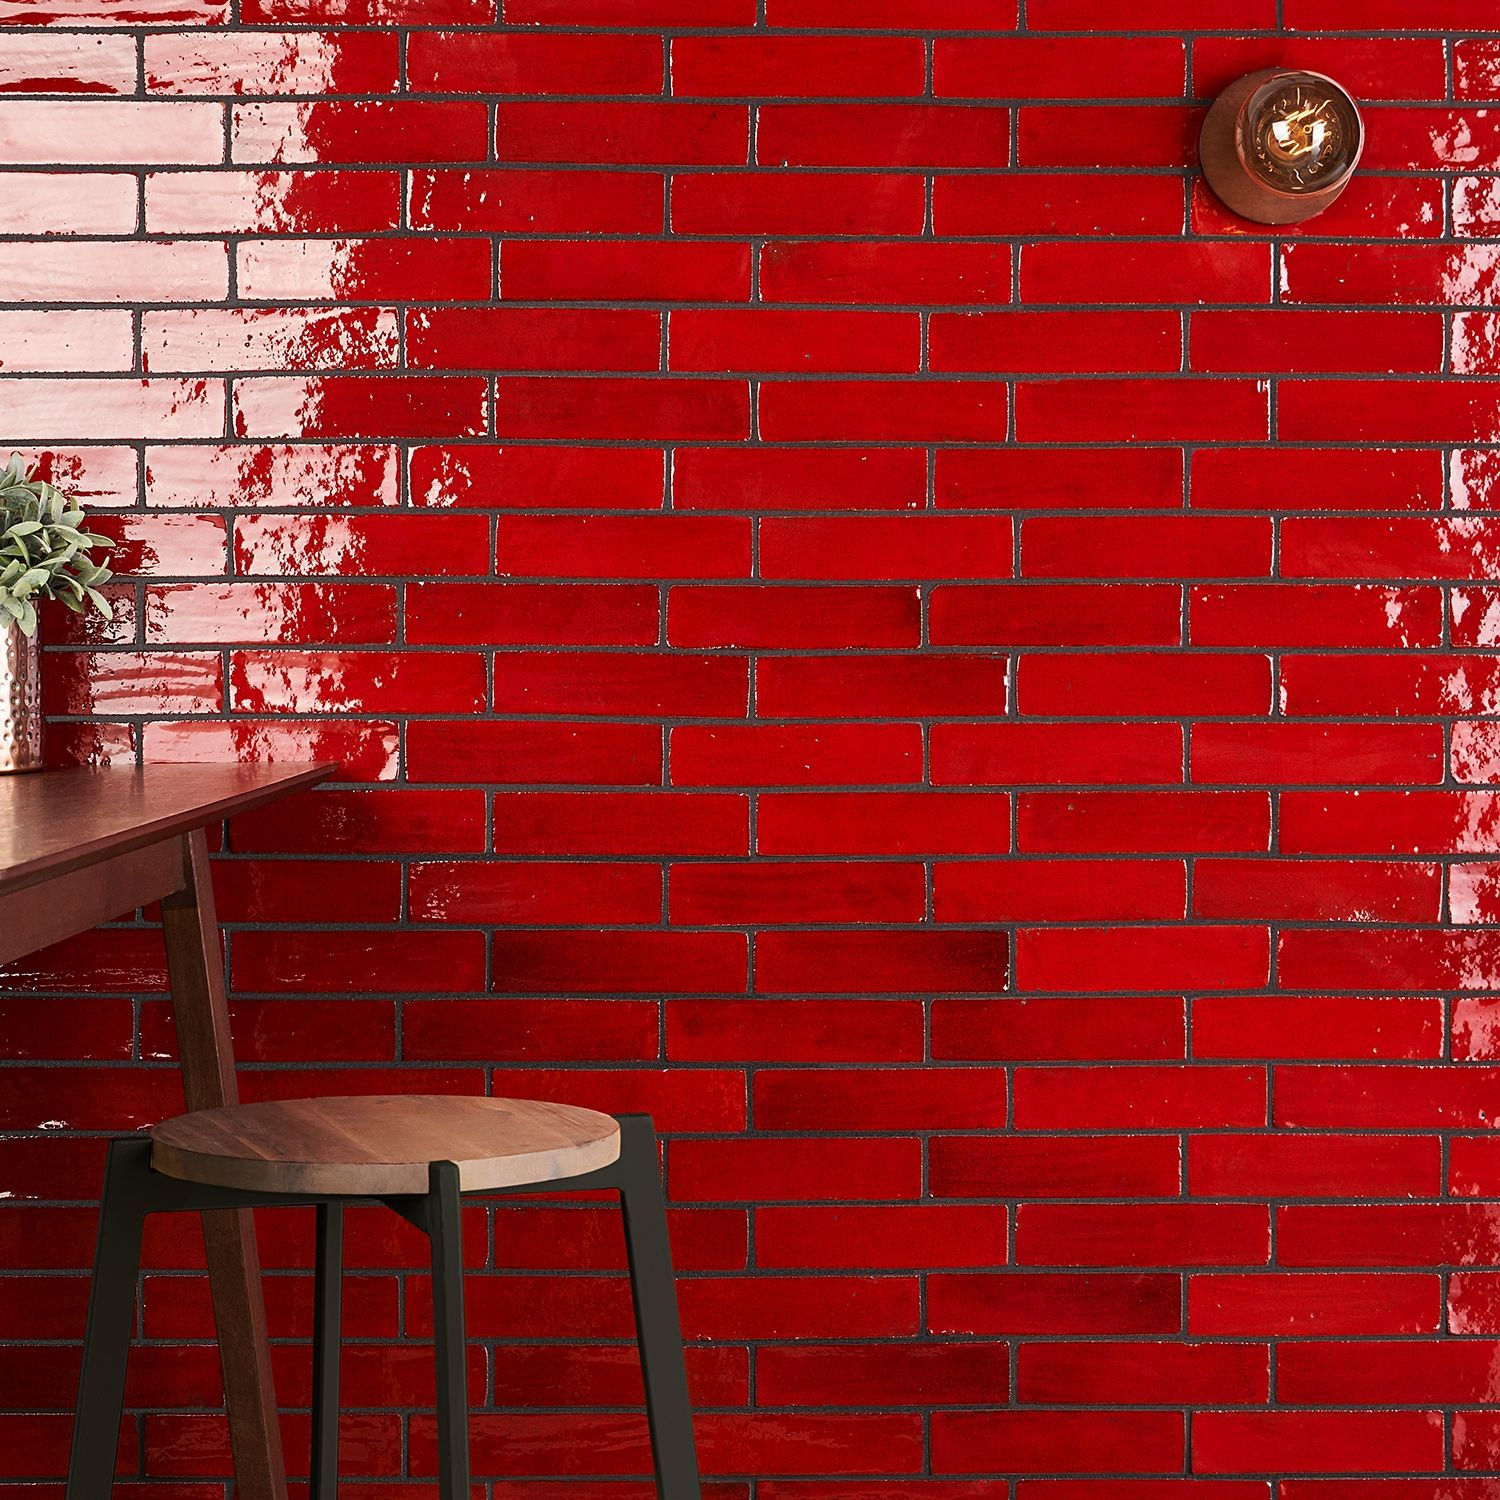 Emery Selenium Red 2x8 Hand Glazed Ceramic Tile